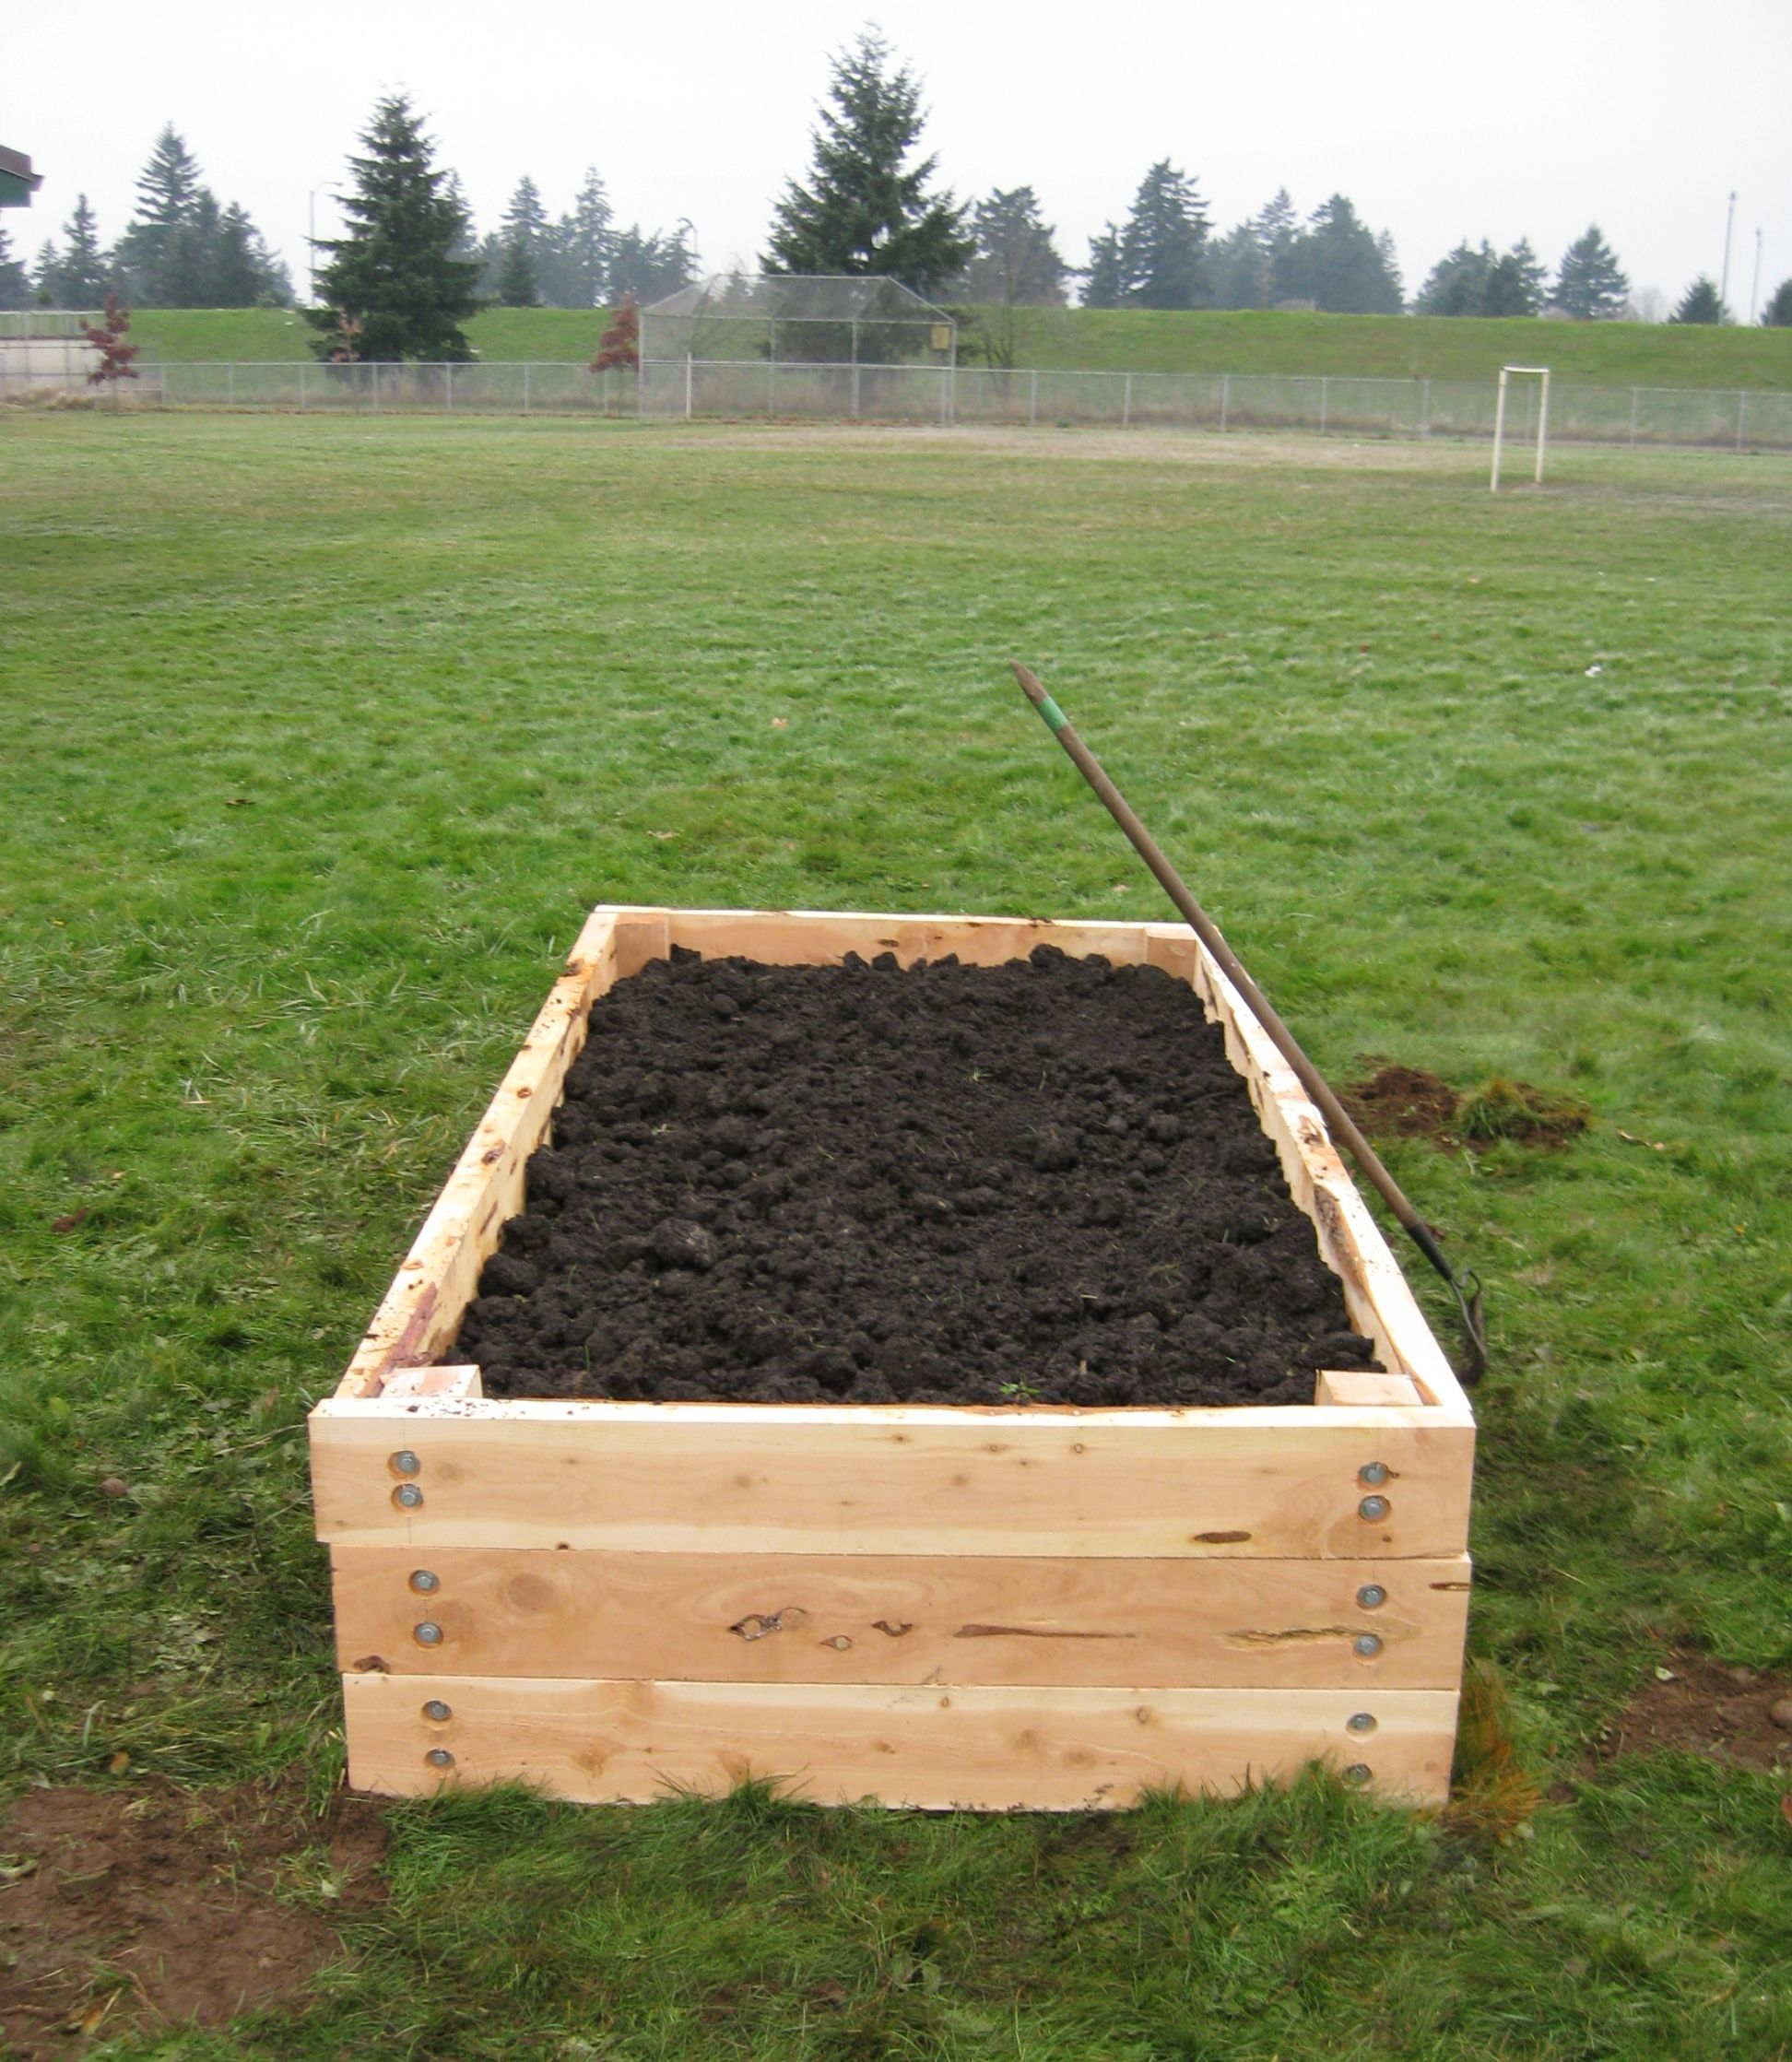 A Simple Raised Bed Built With 2x6 And 4x4 Juniper For An Elementary School Gardening Program Raised Garden Beds Garden Design Layout Raised Garden